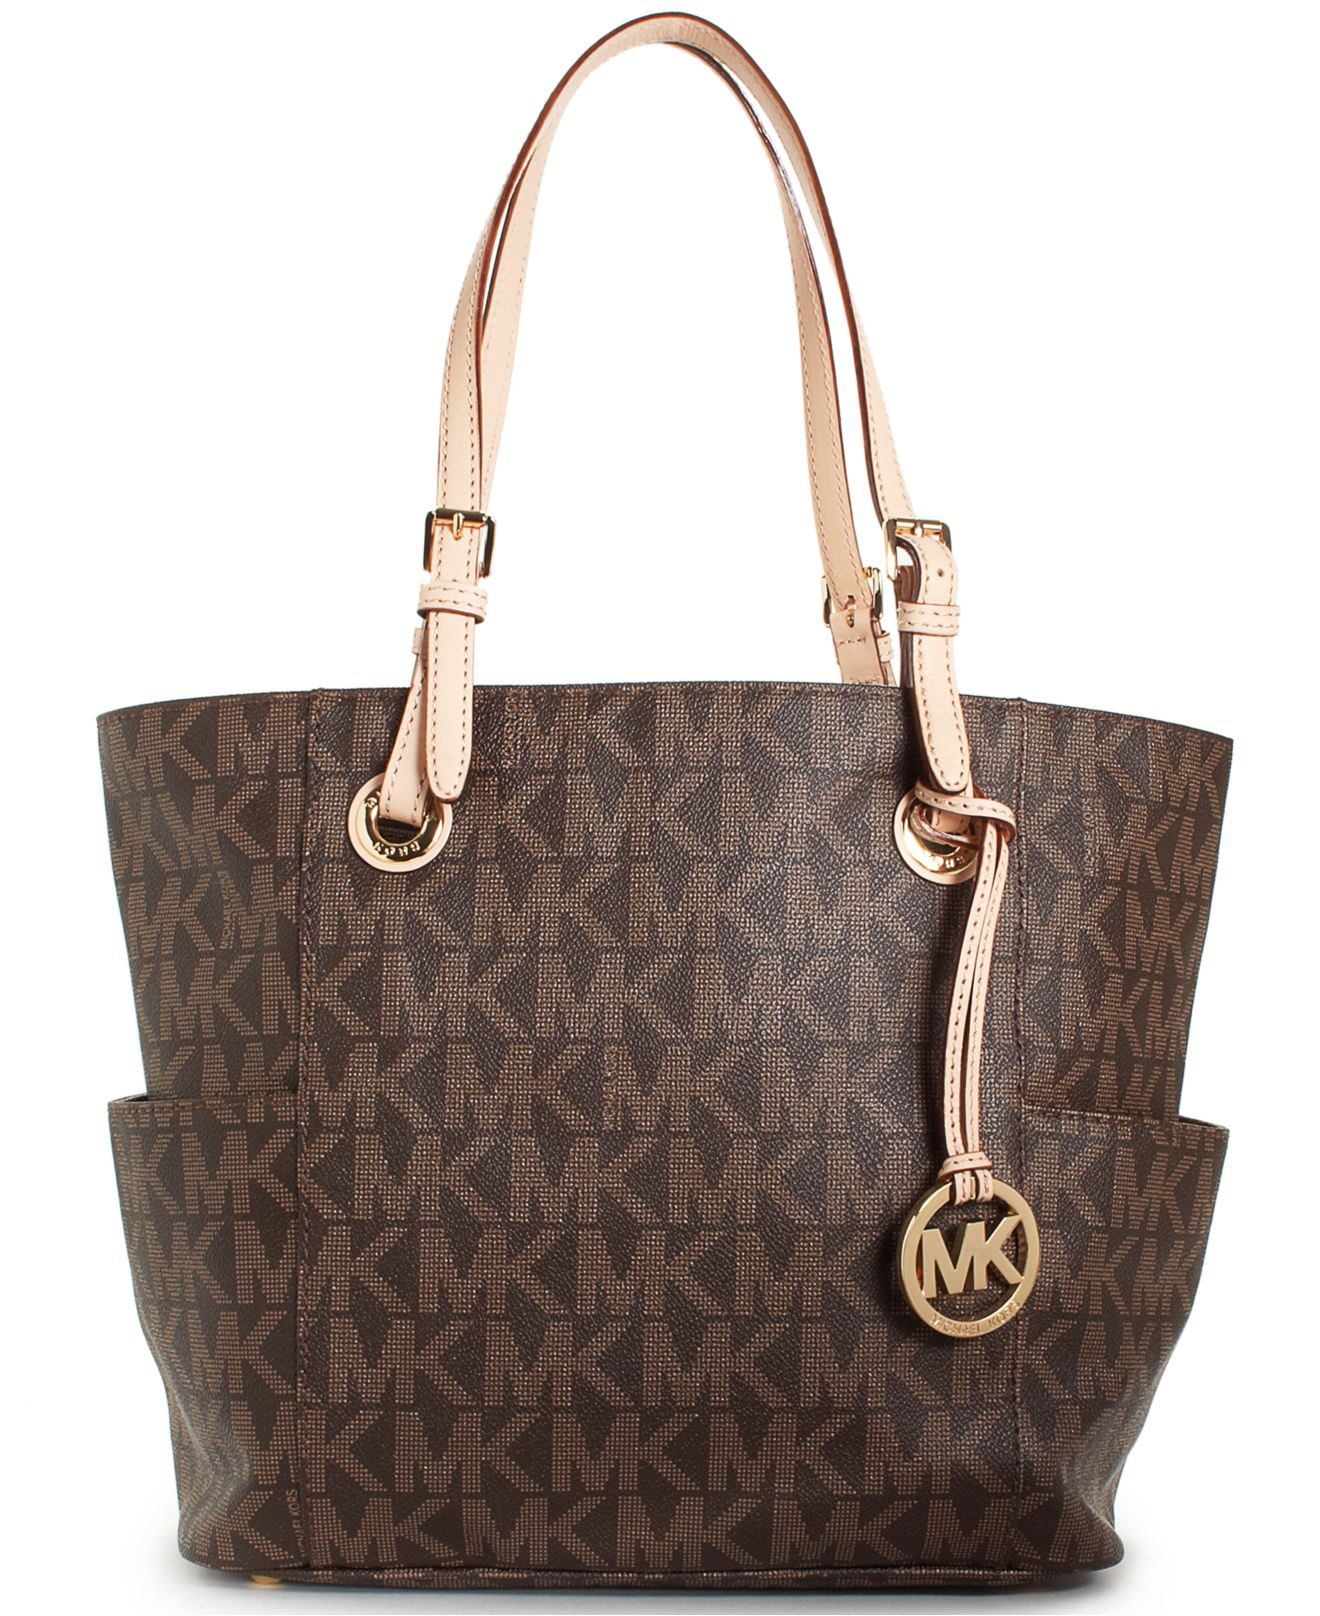 Shop MICHAEL Michael Kors Designer Handbags & Accessories at Macy's! FREE SHIPPING with $99 purchase! Shop for Michael Kors bags, shoes, jewelry & more. Macy's Presents: The Edit- A curated mix of fashion and inspiration Check It Out. Free Shipping with $99 purchase + .